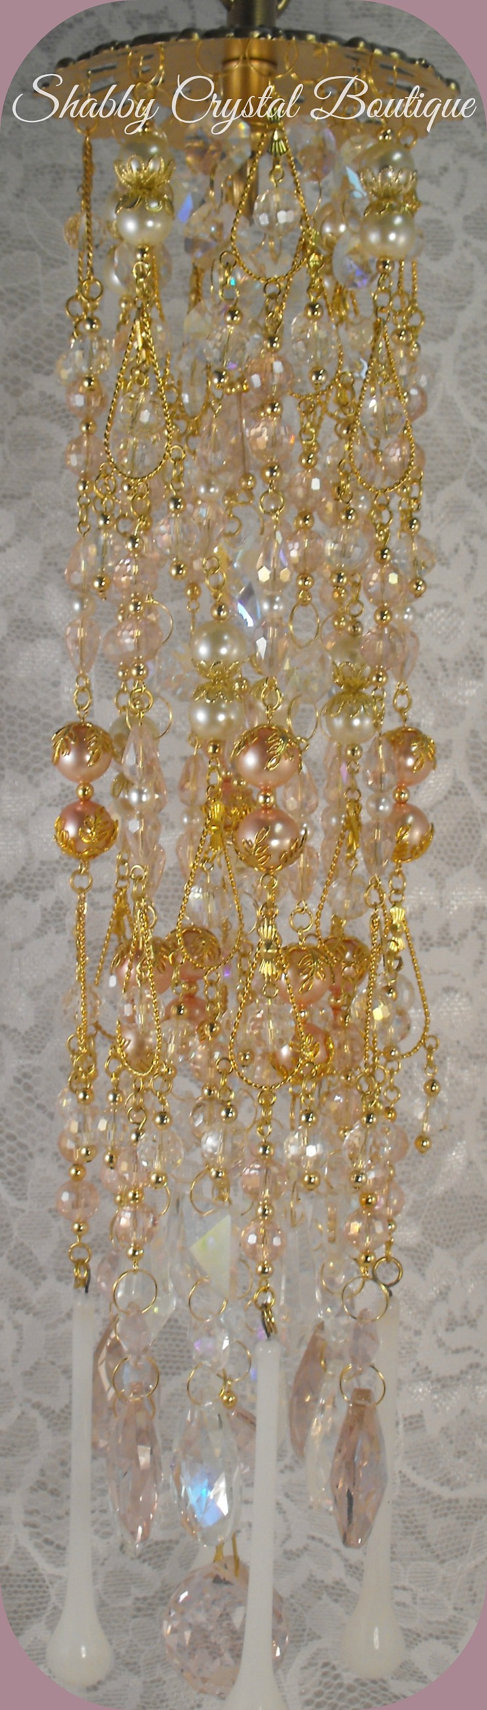 So Sweet Shabby Crystal Windchime by SCrystalBoutique on Etsy